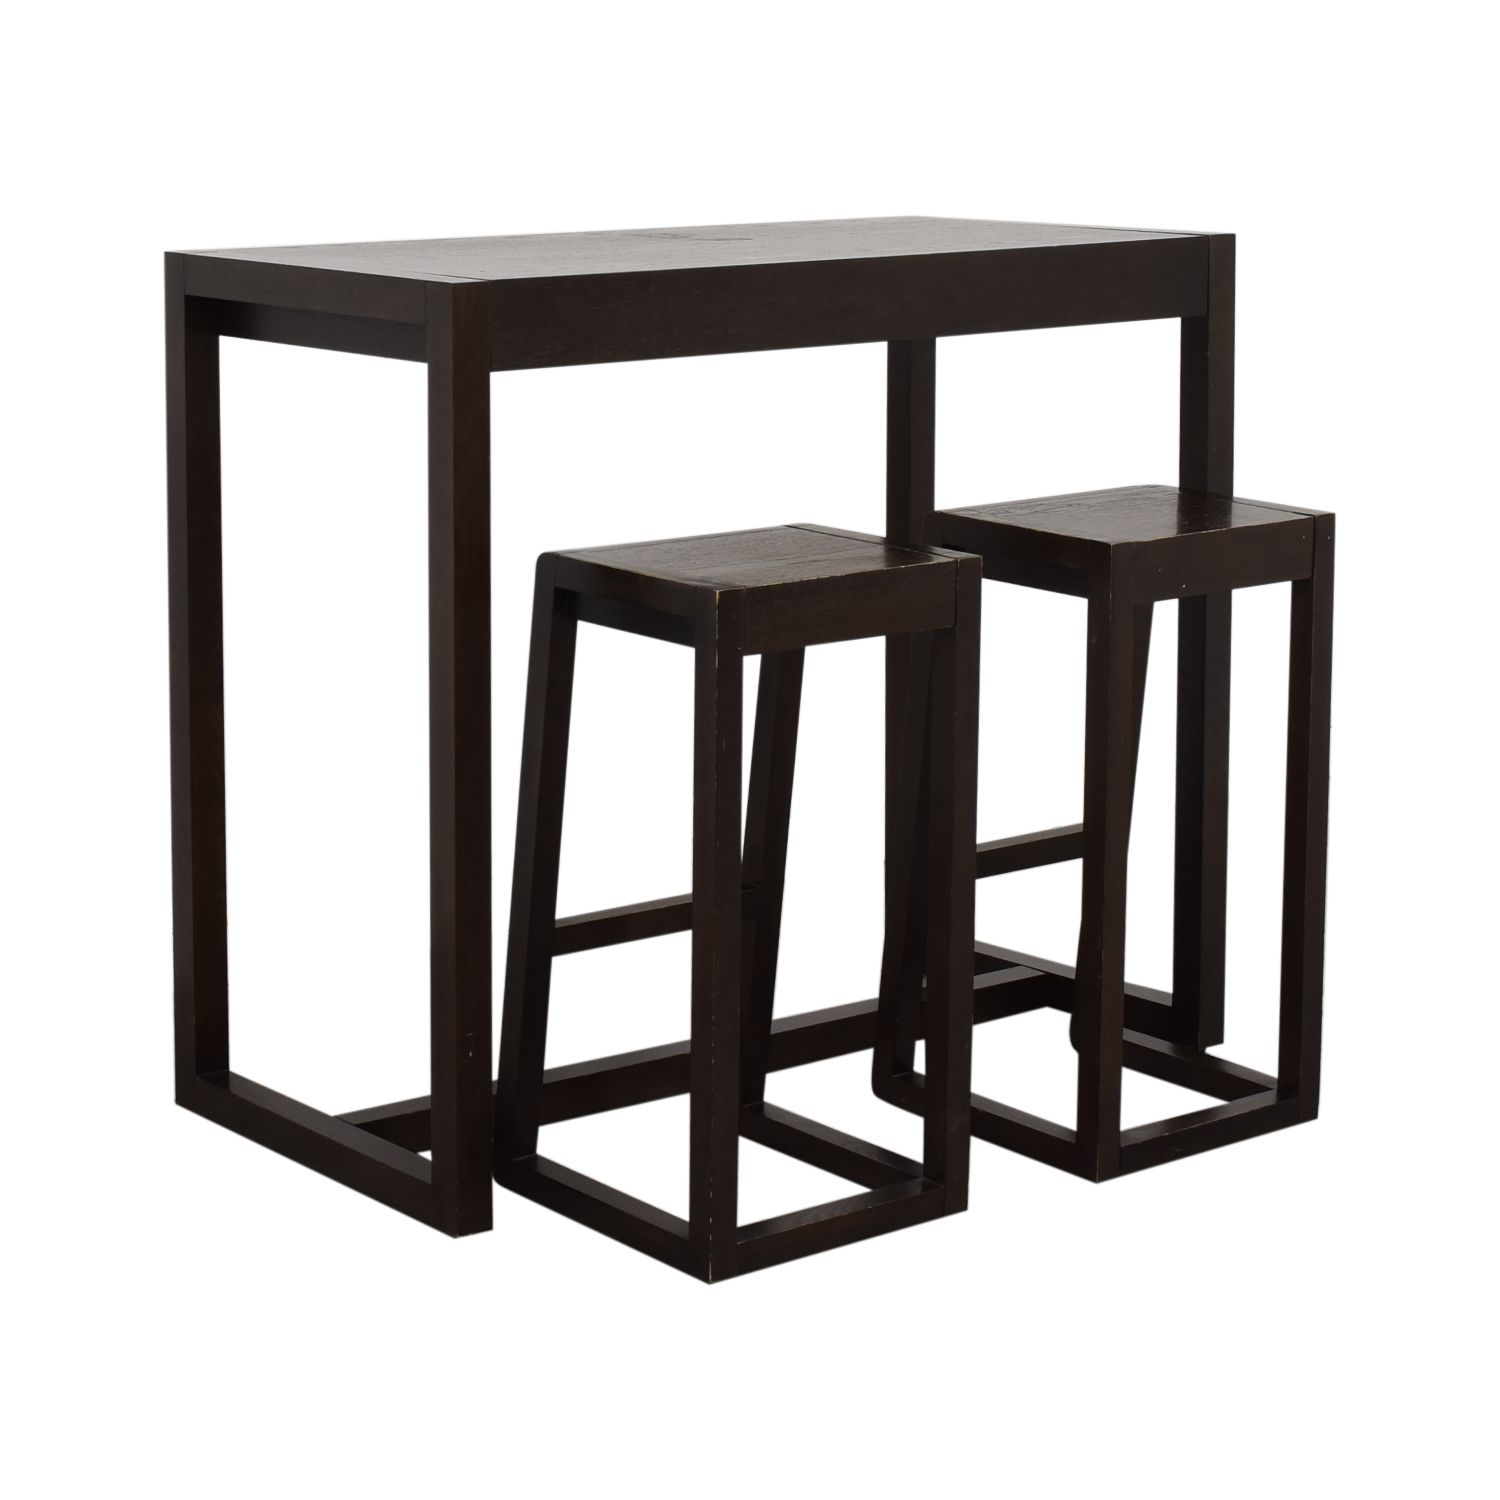 shop  Counter Height Table and Stools online